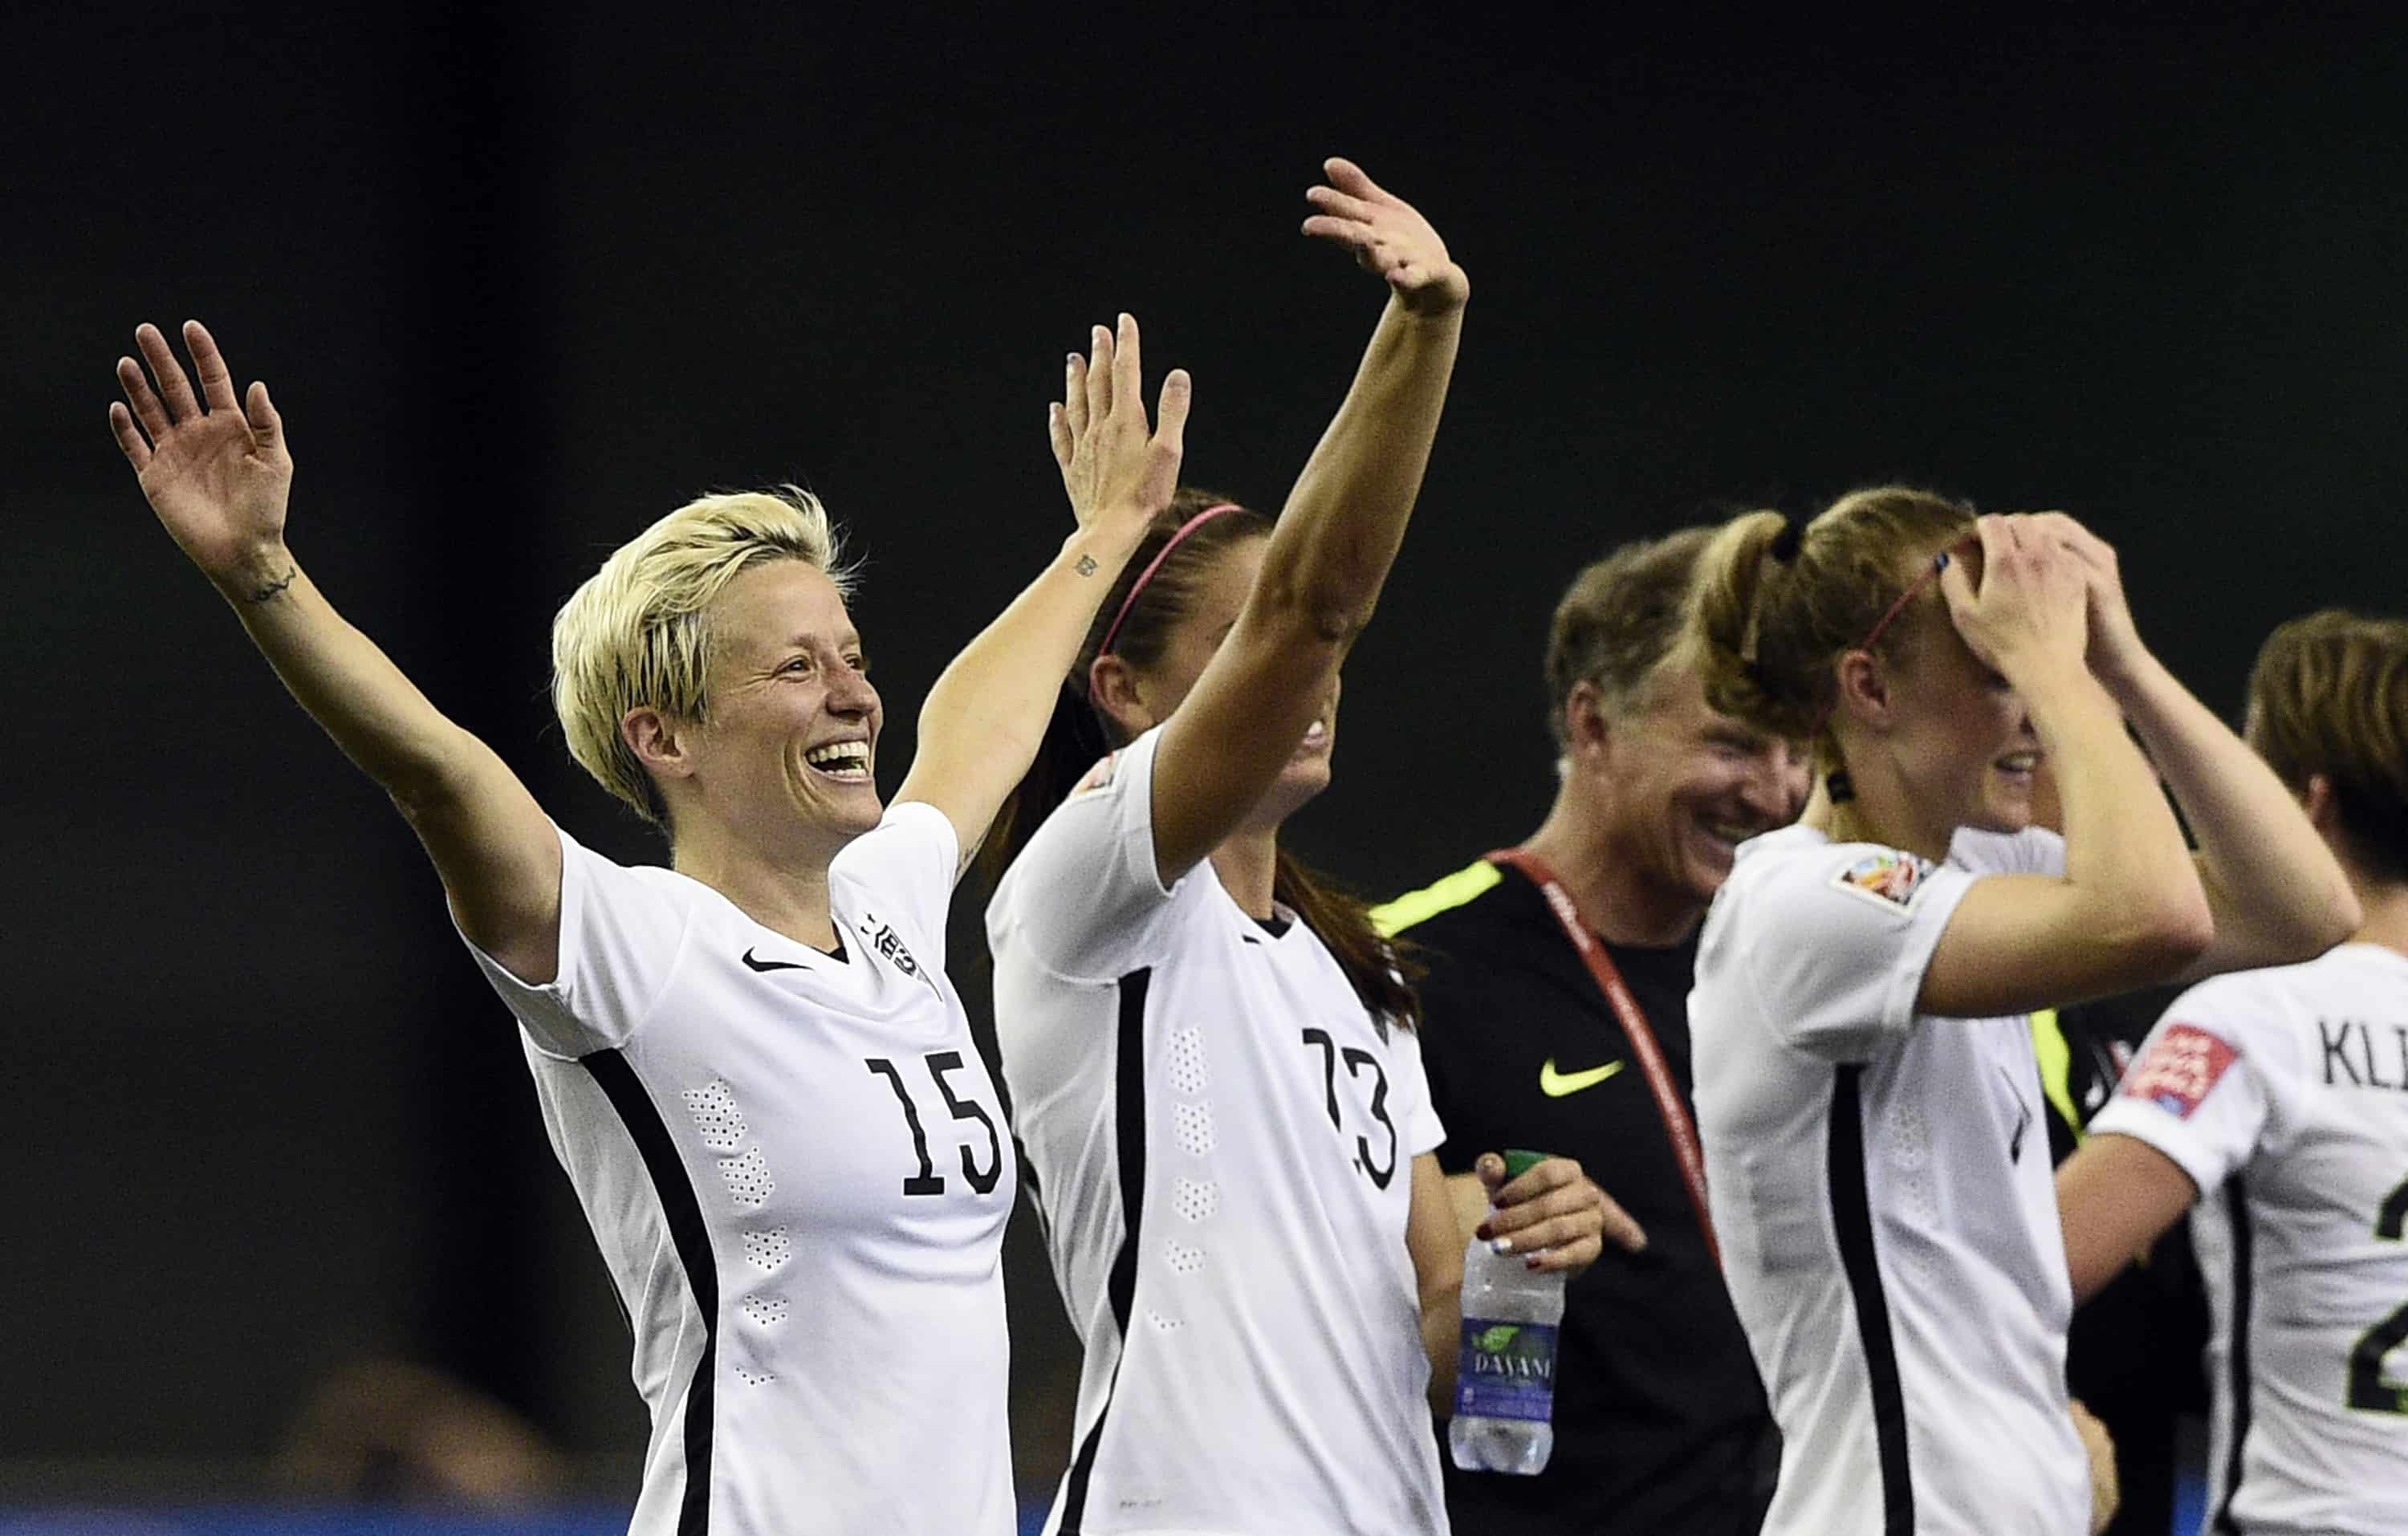 U.S. midfielder Megan Rapinoe celebrates after winning the semi-final .